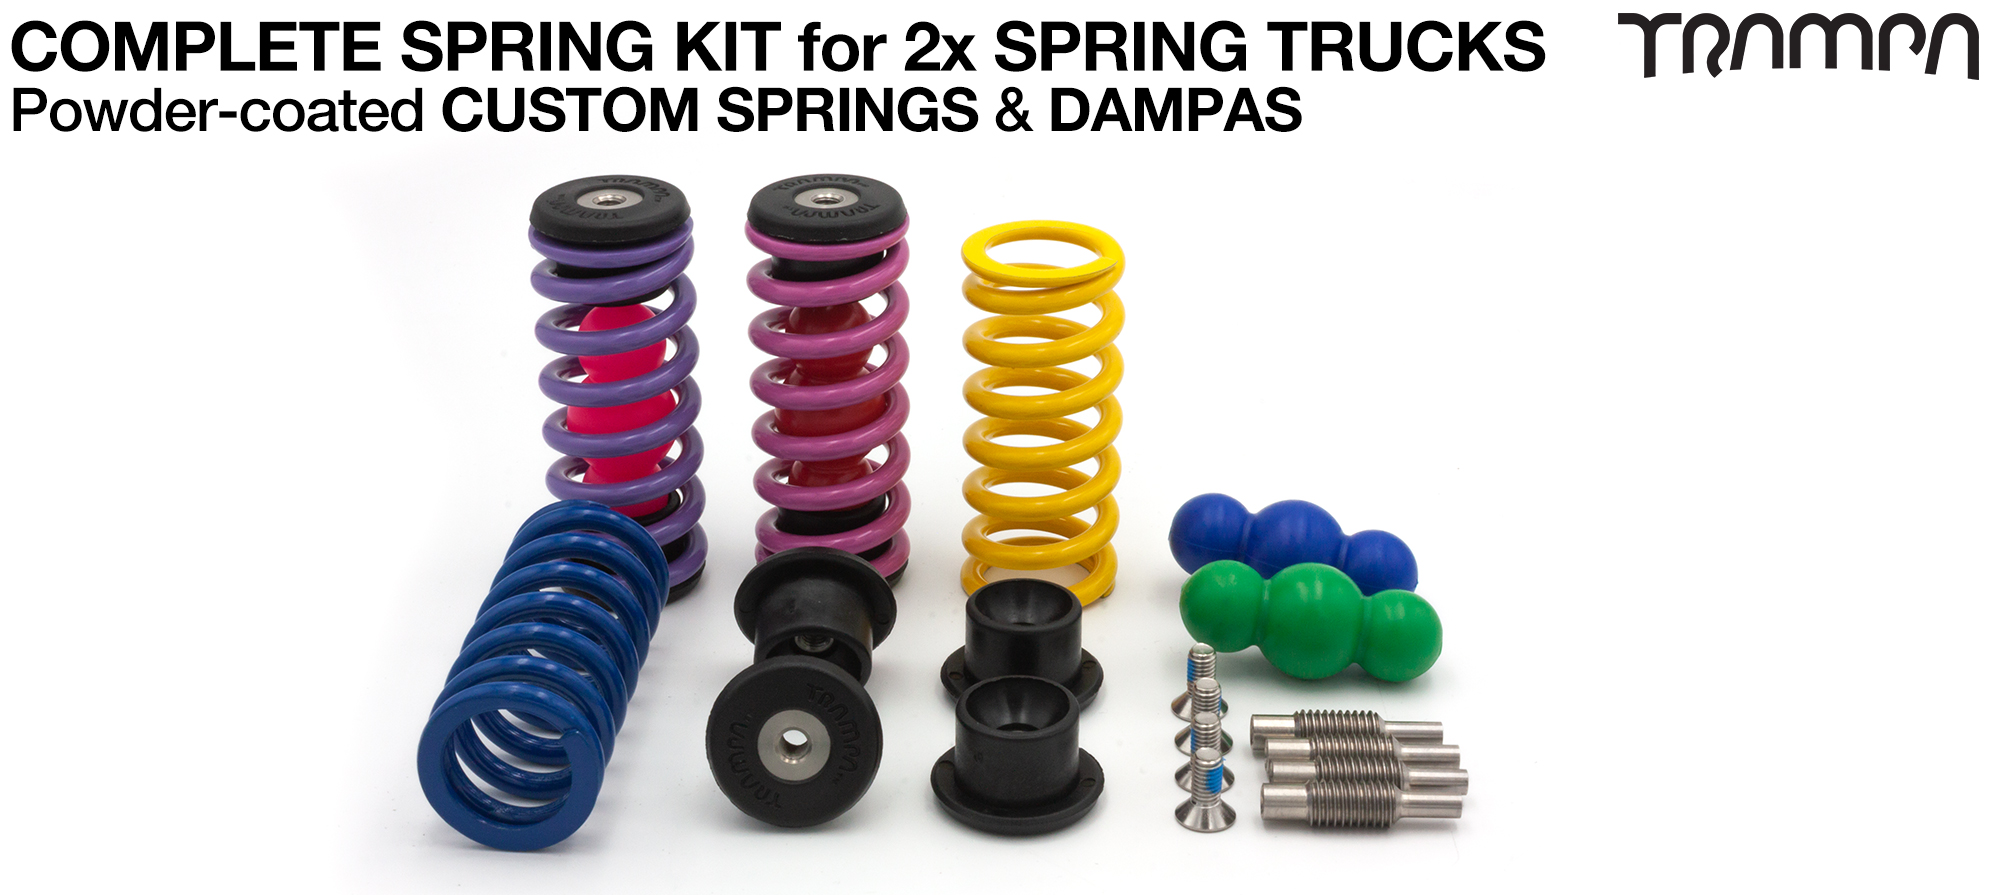 4x Spring 4x Dampa 8x Spring Retainers 4x Spring Adjuster & 4 M5x12mm Countersunk Bolt